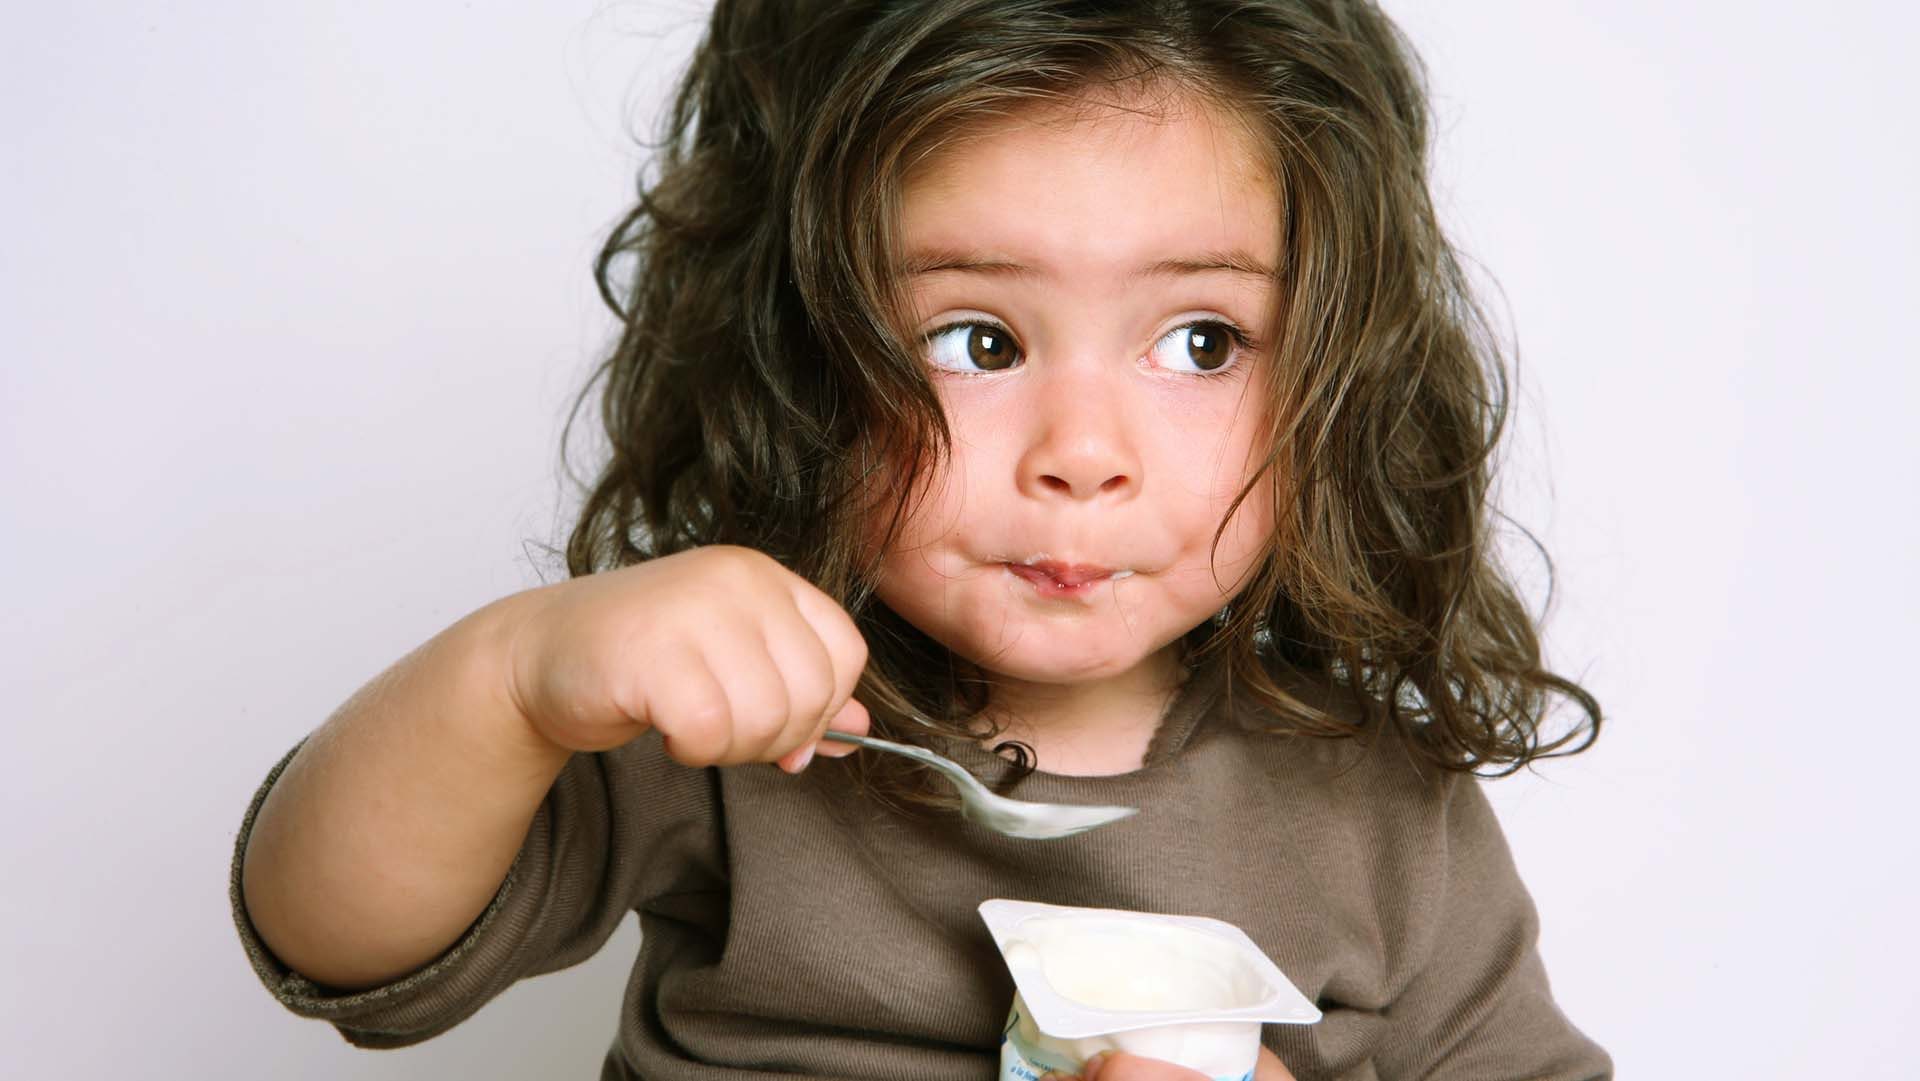 be_5_ways_to_prevent_fussy_eating_in_kids